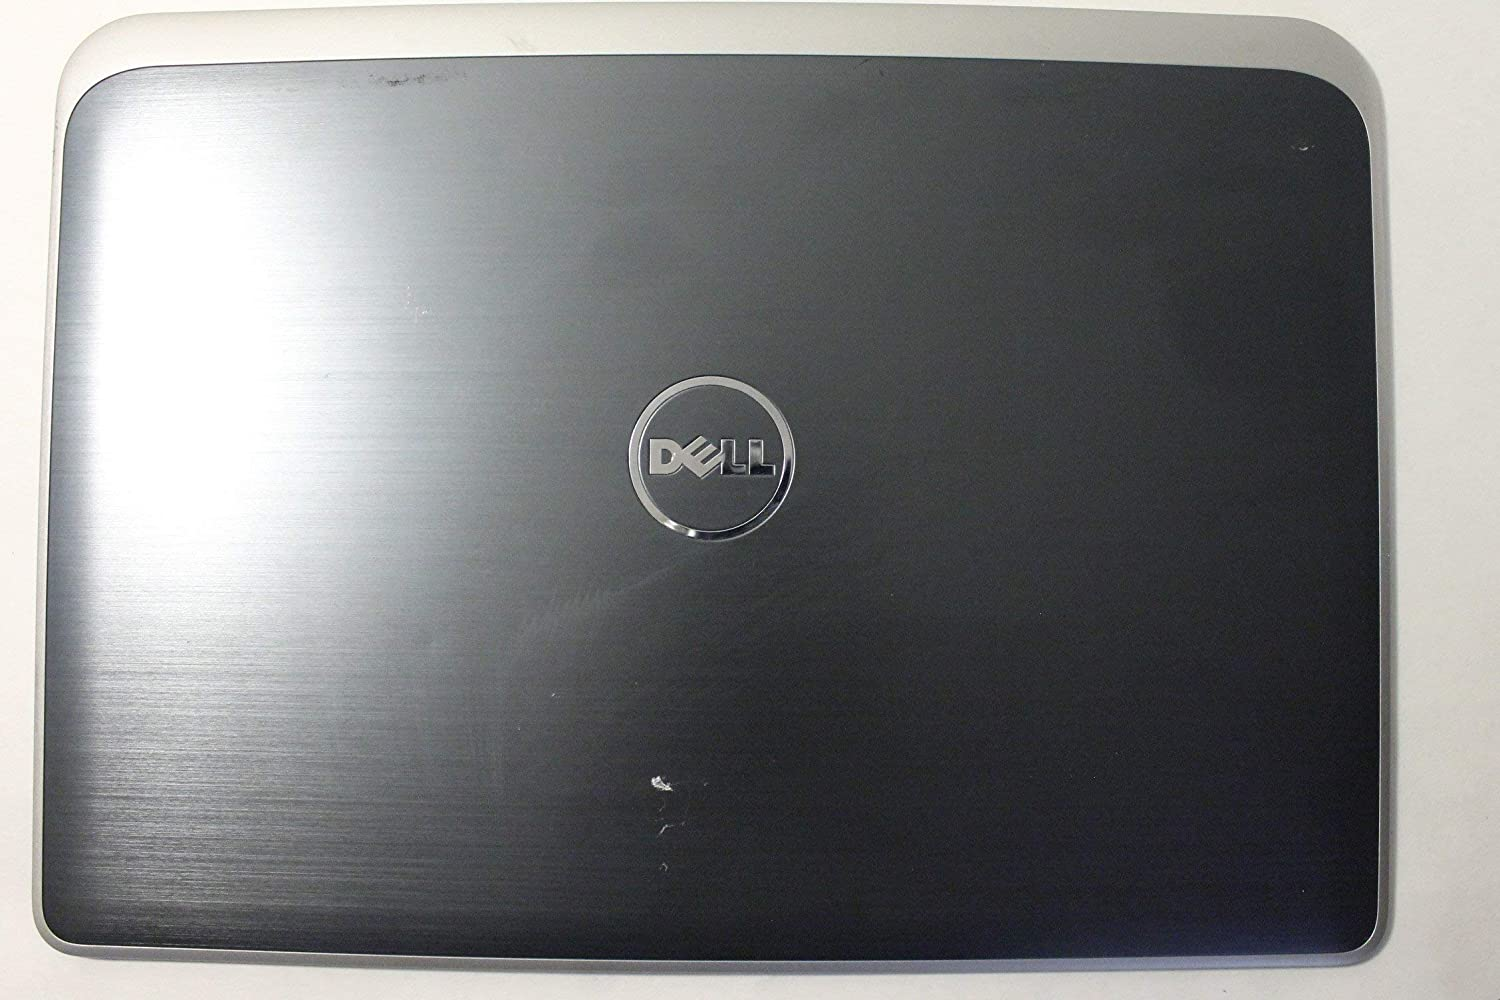 Dell LED FH33H Gray 15.4